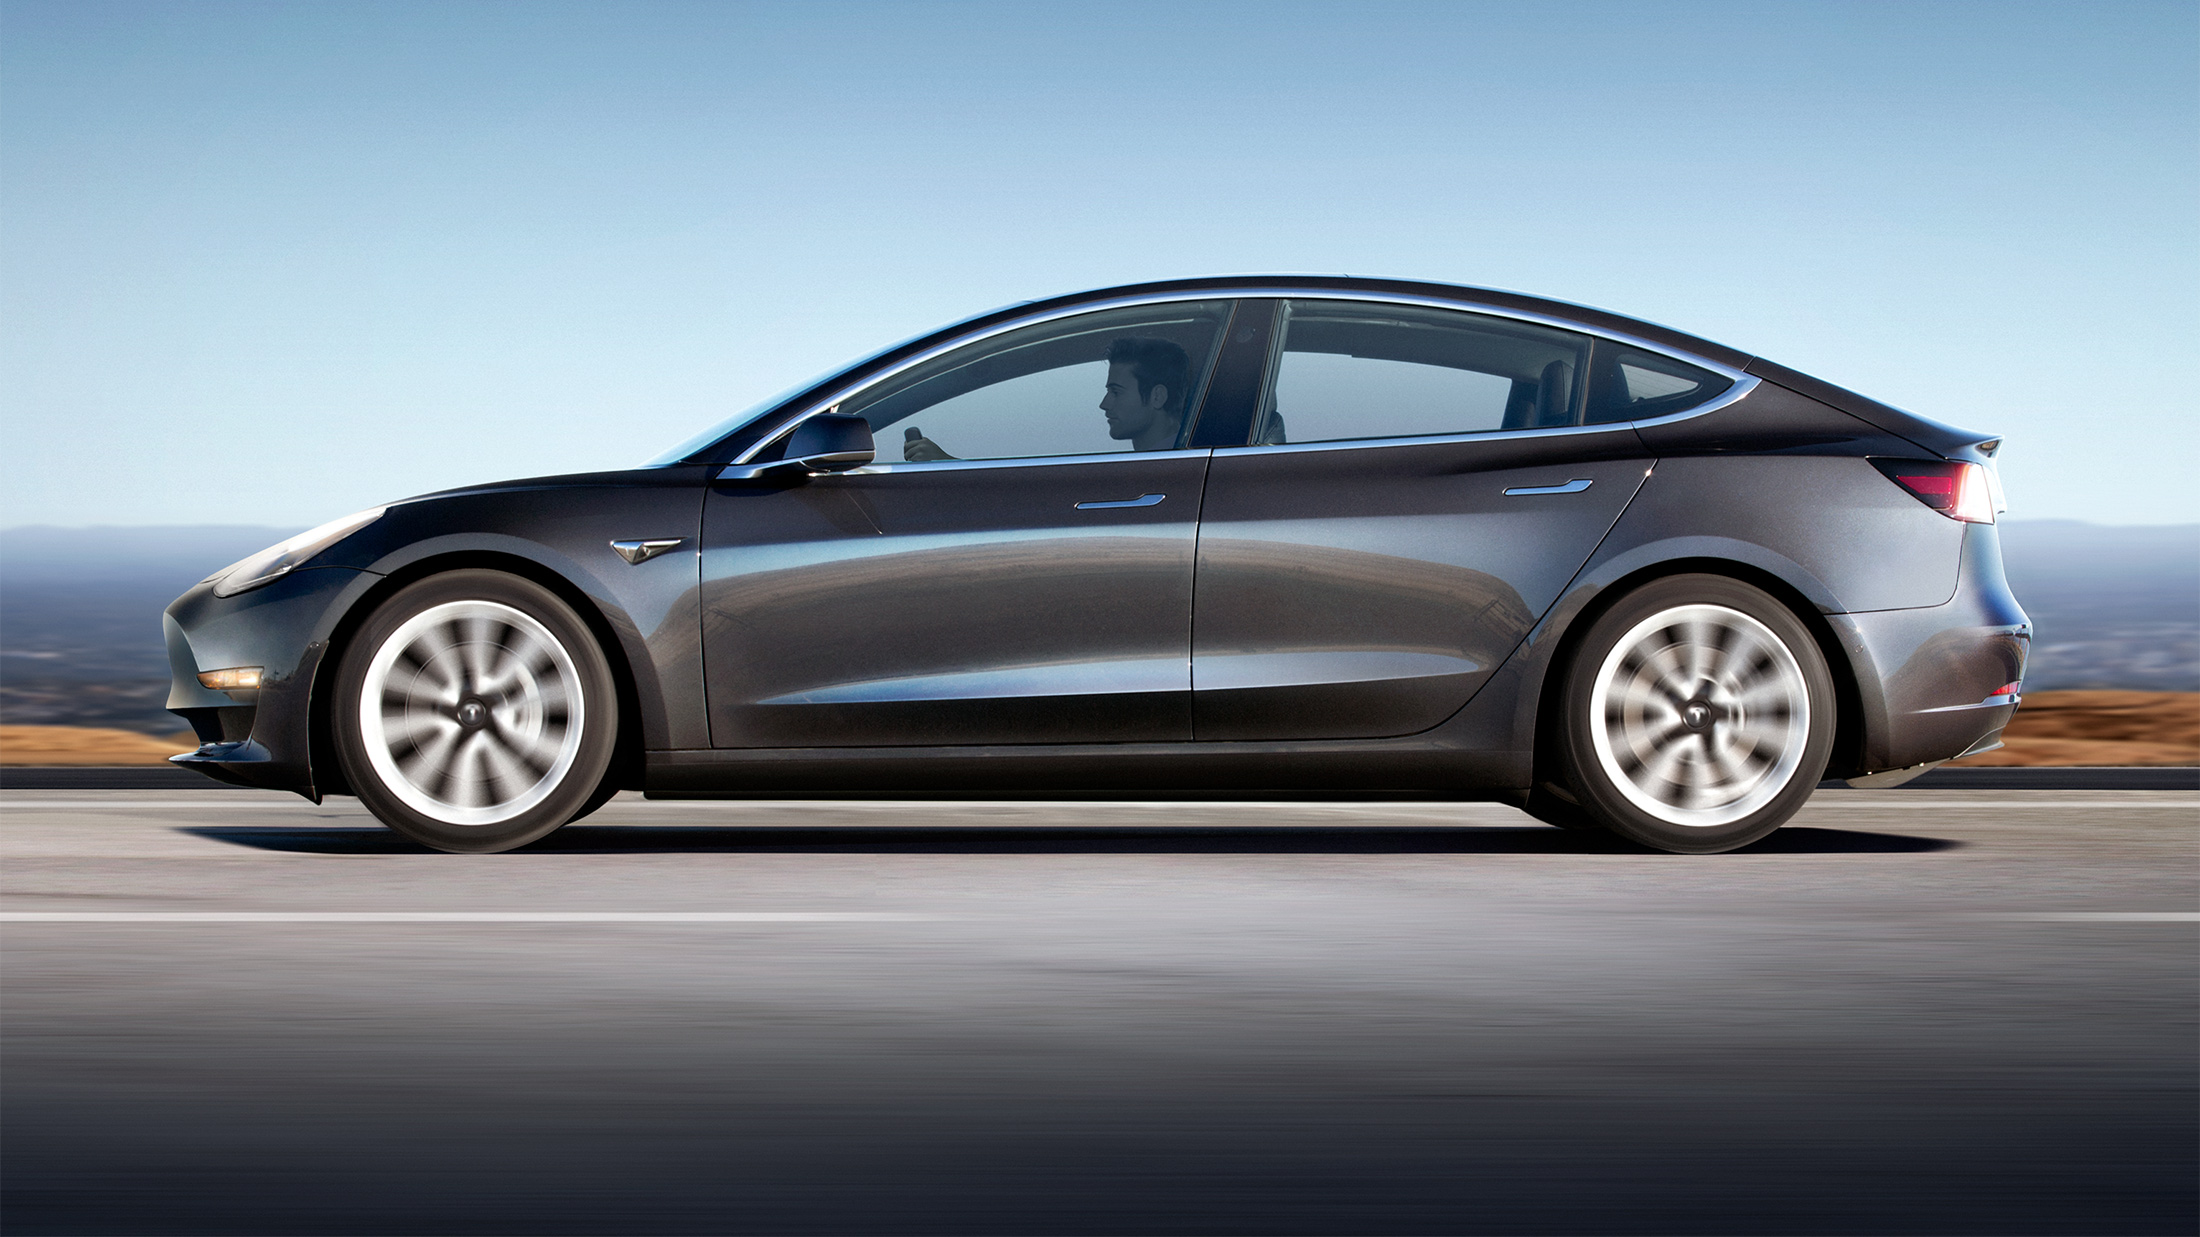 model 3 support - Magazine cover